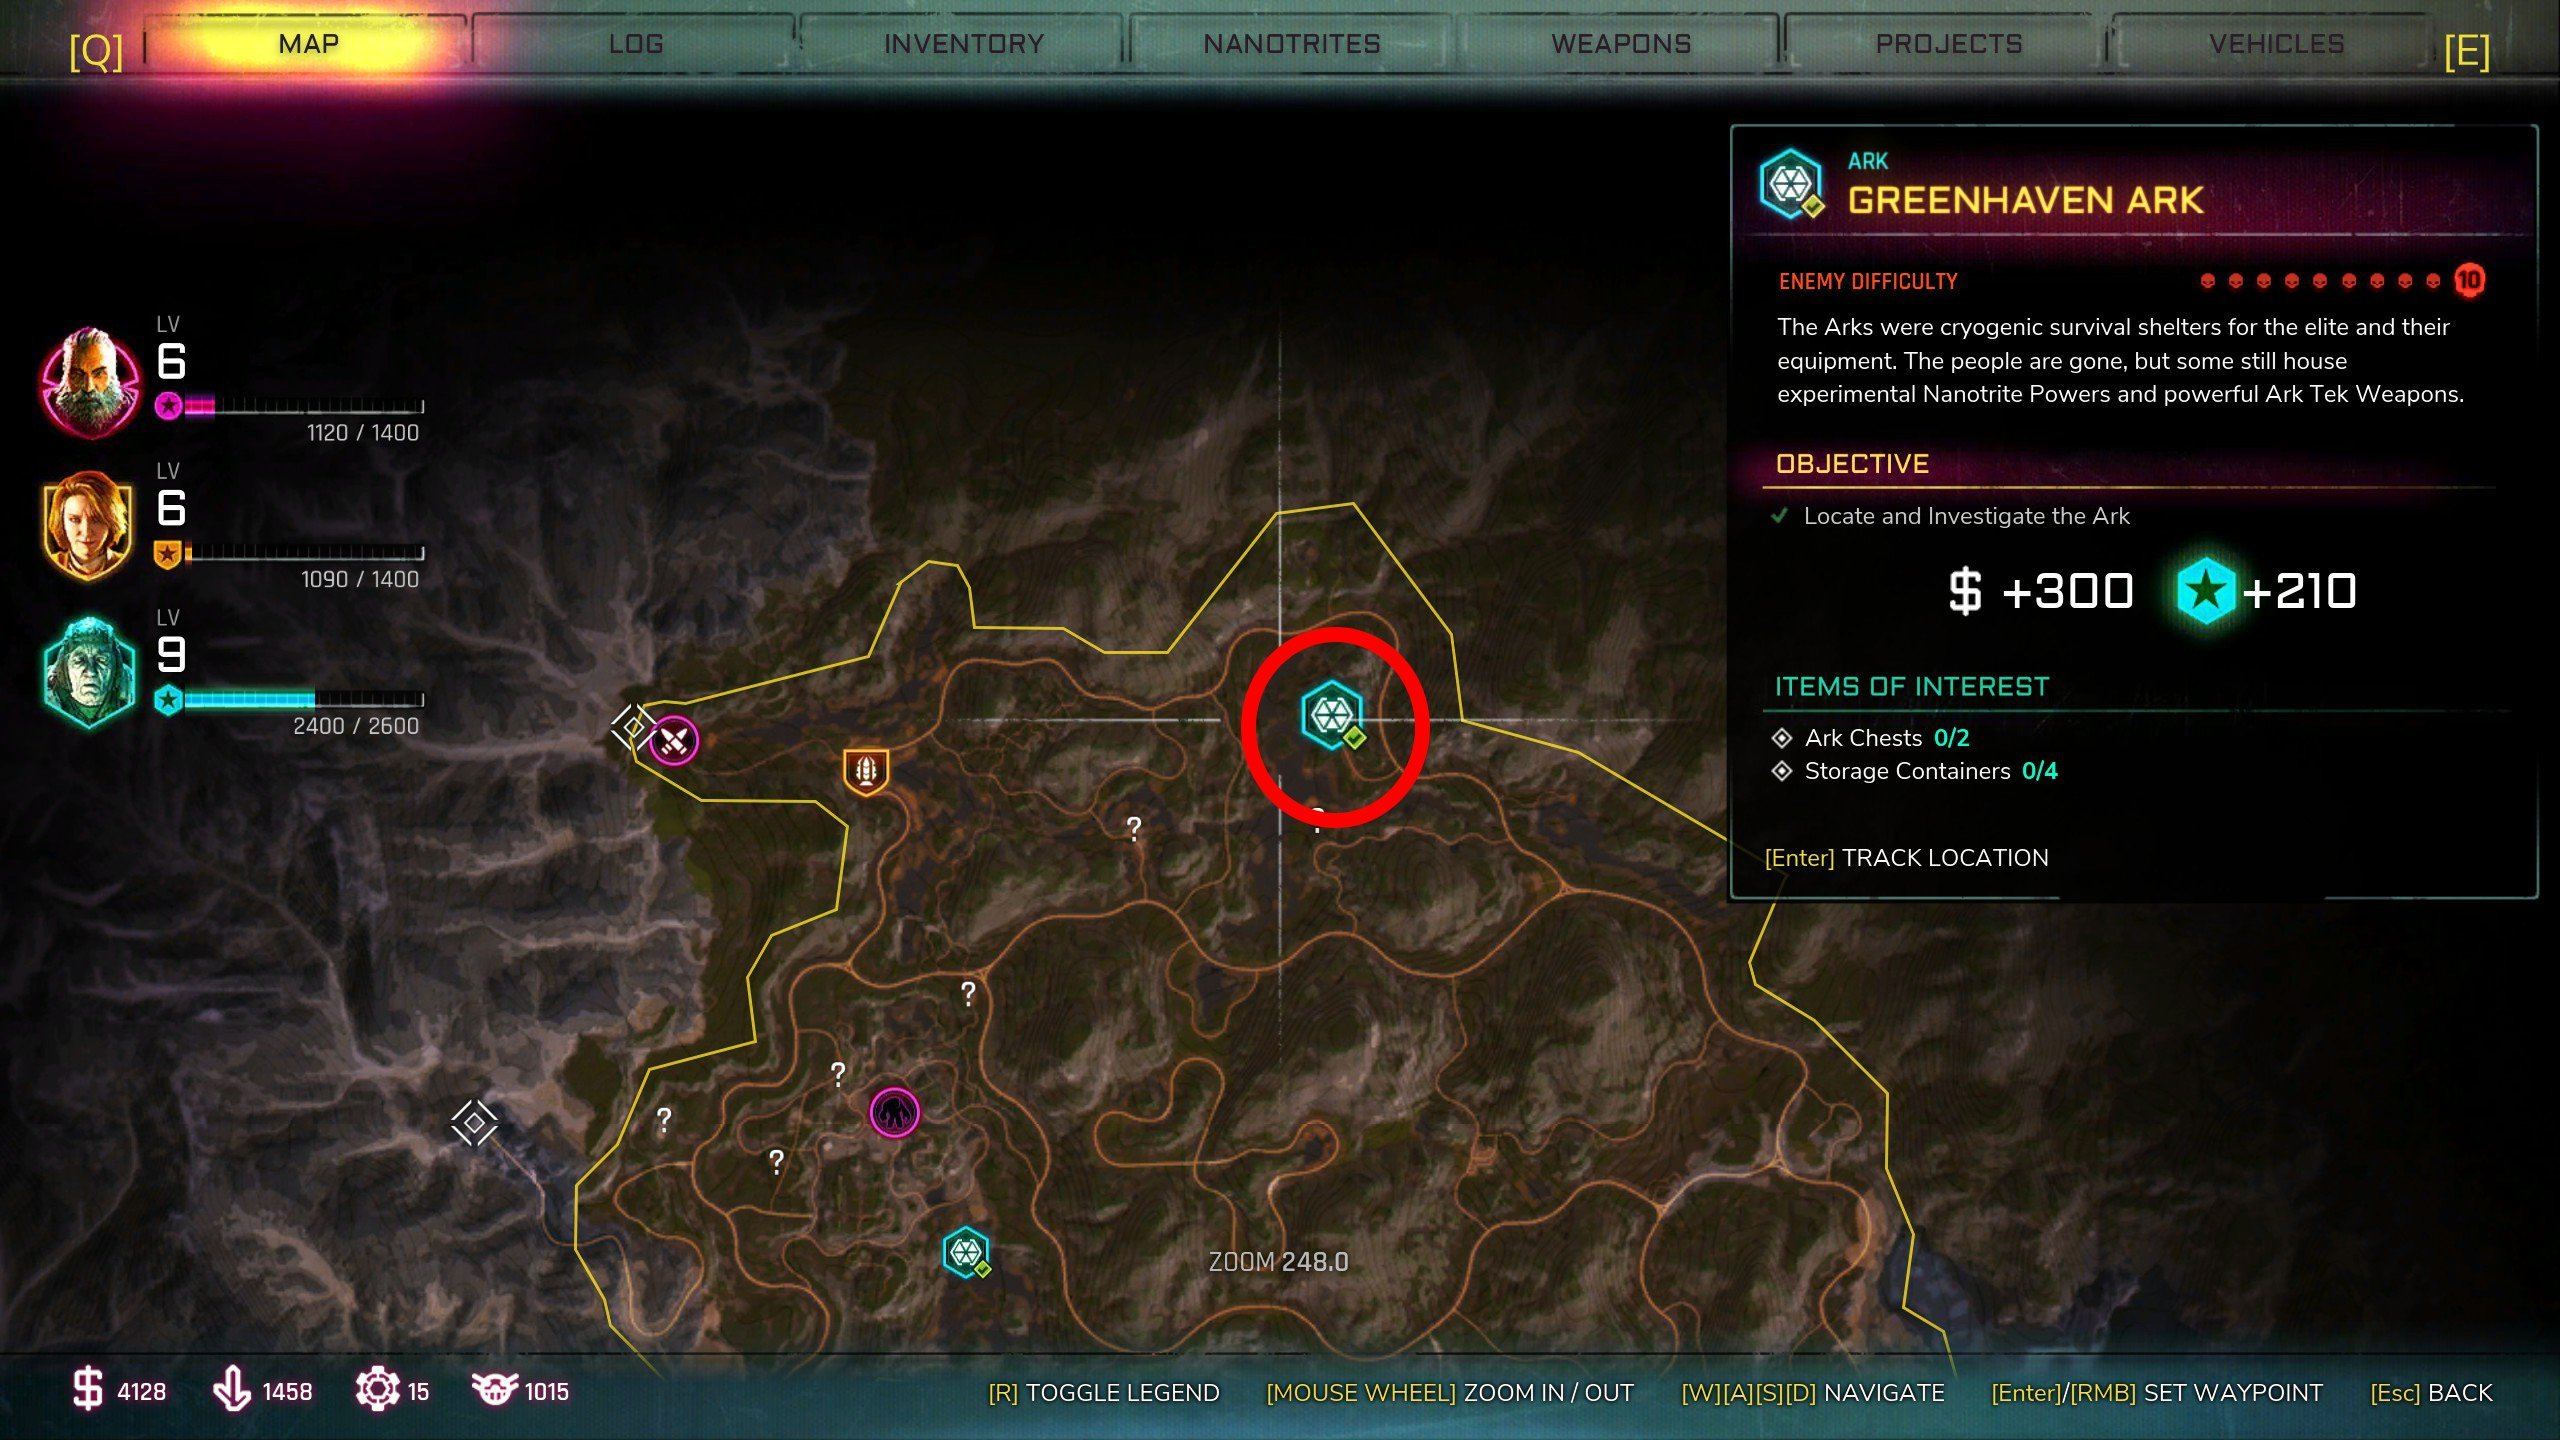 Greenhaven Ark location - All Arks in Rage 2